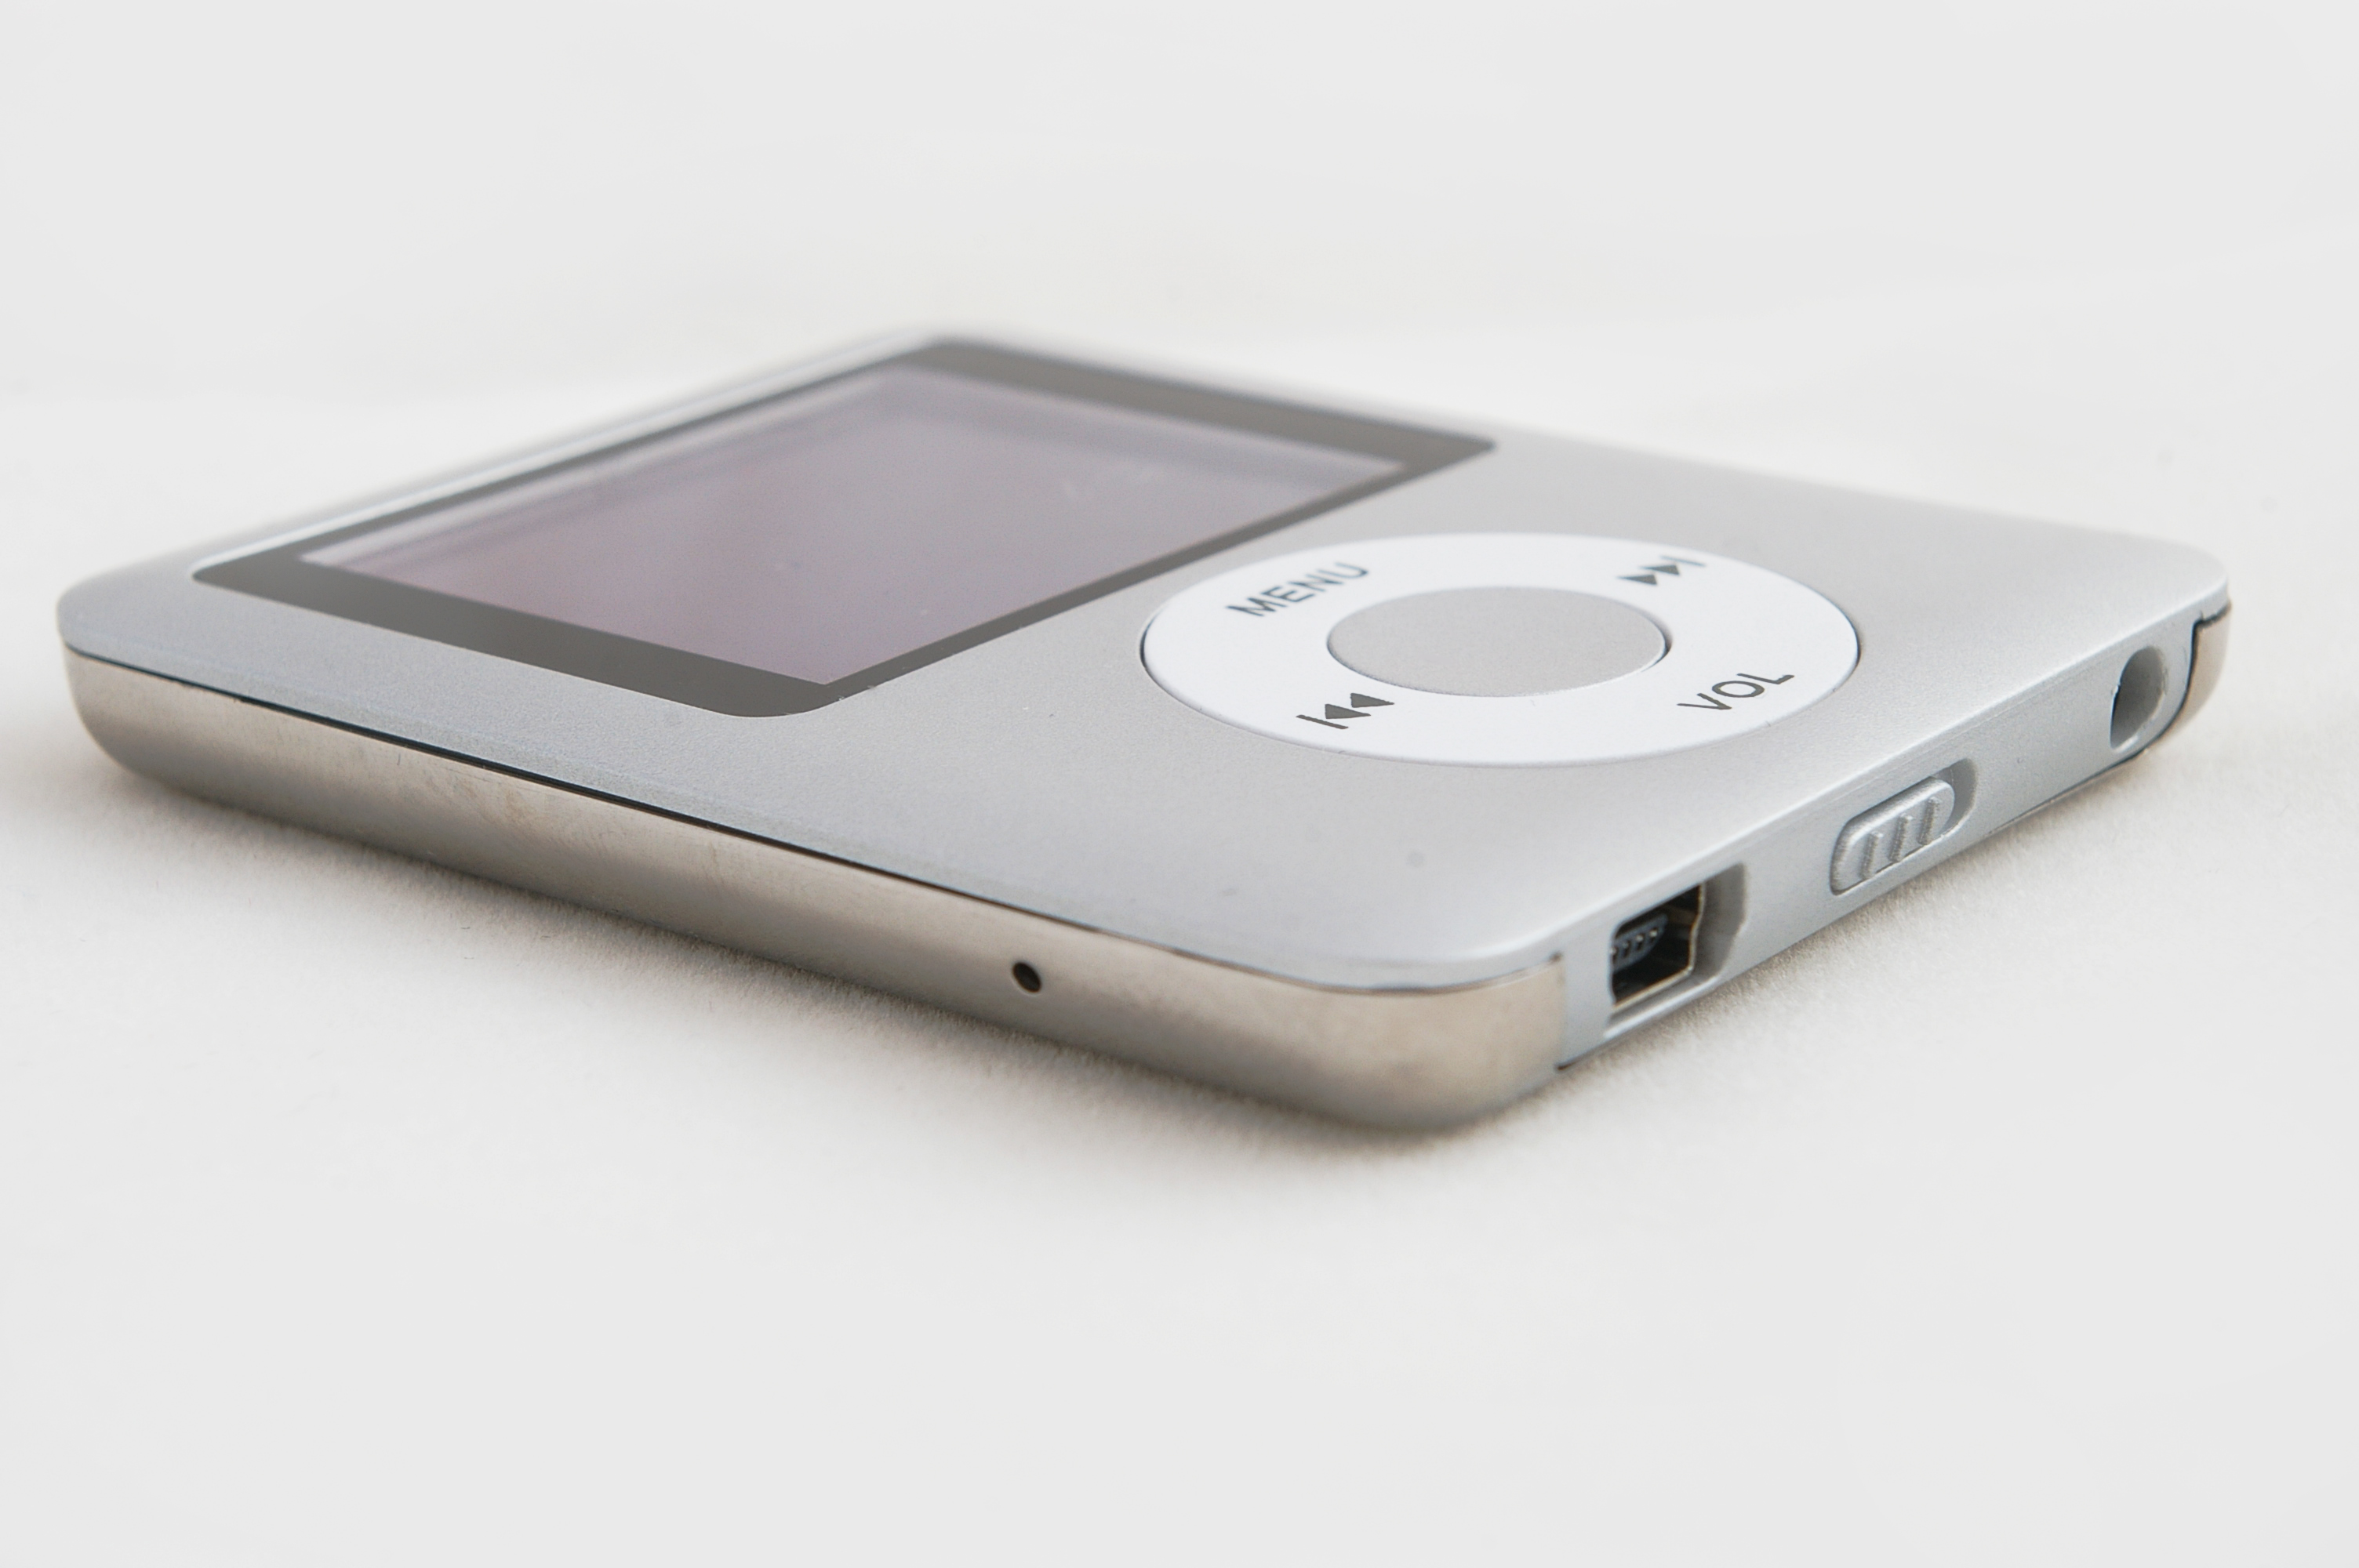 Free photo: Mp3 player - Technology, Smart, Silver - Free